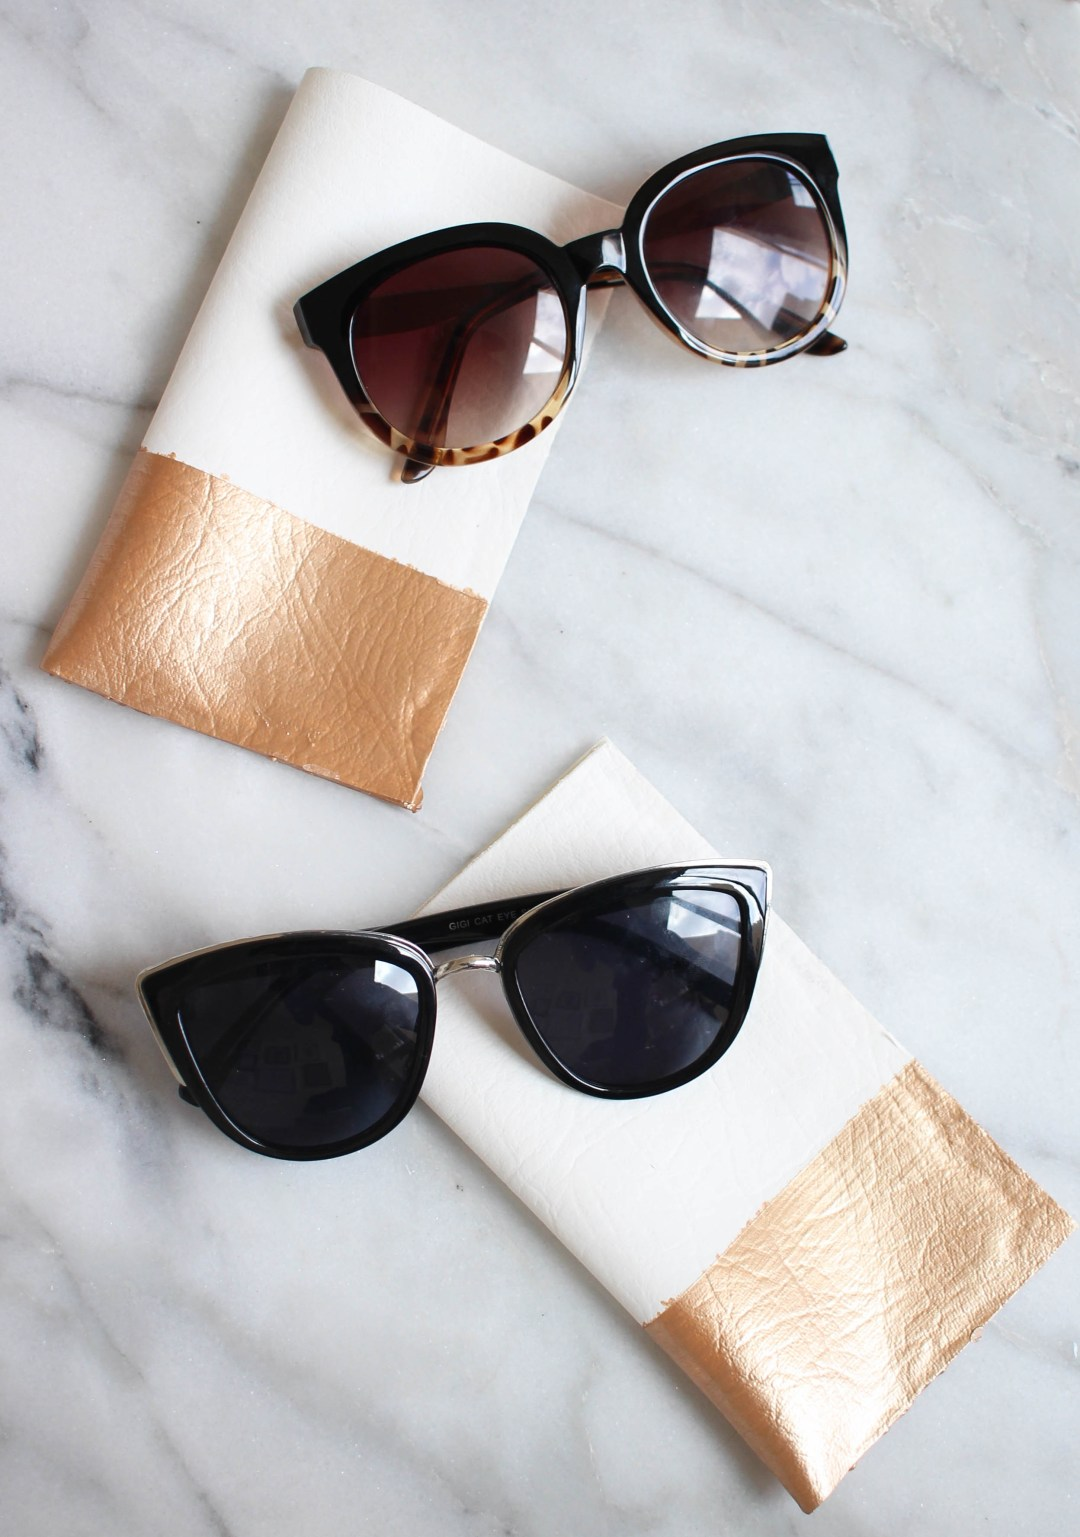 DIY No-Sew Sunglass Case | Twinspiration